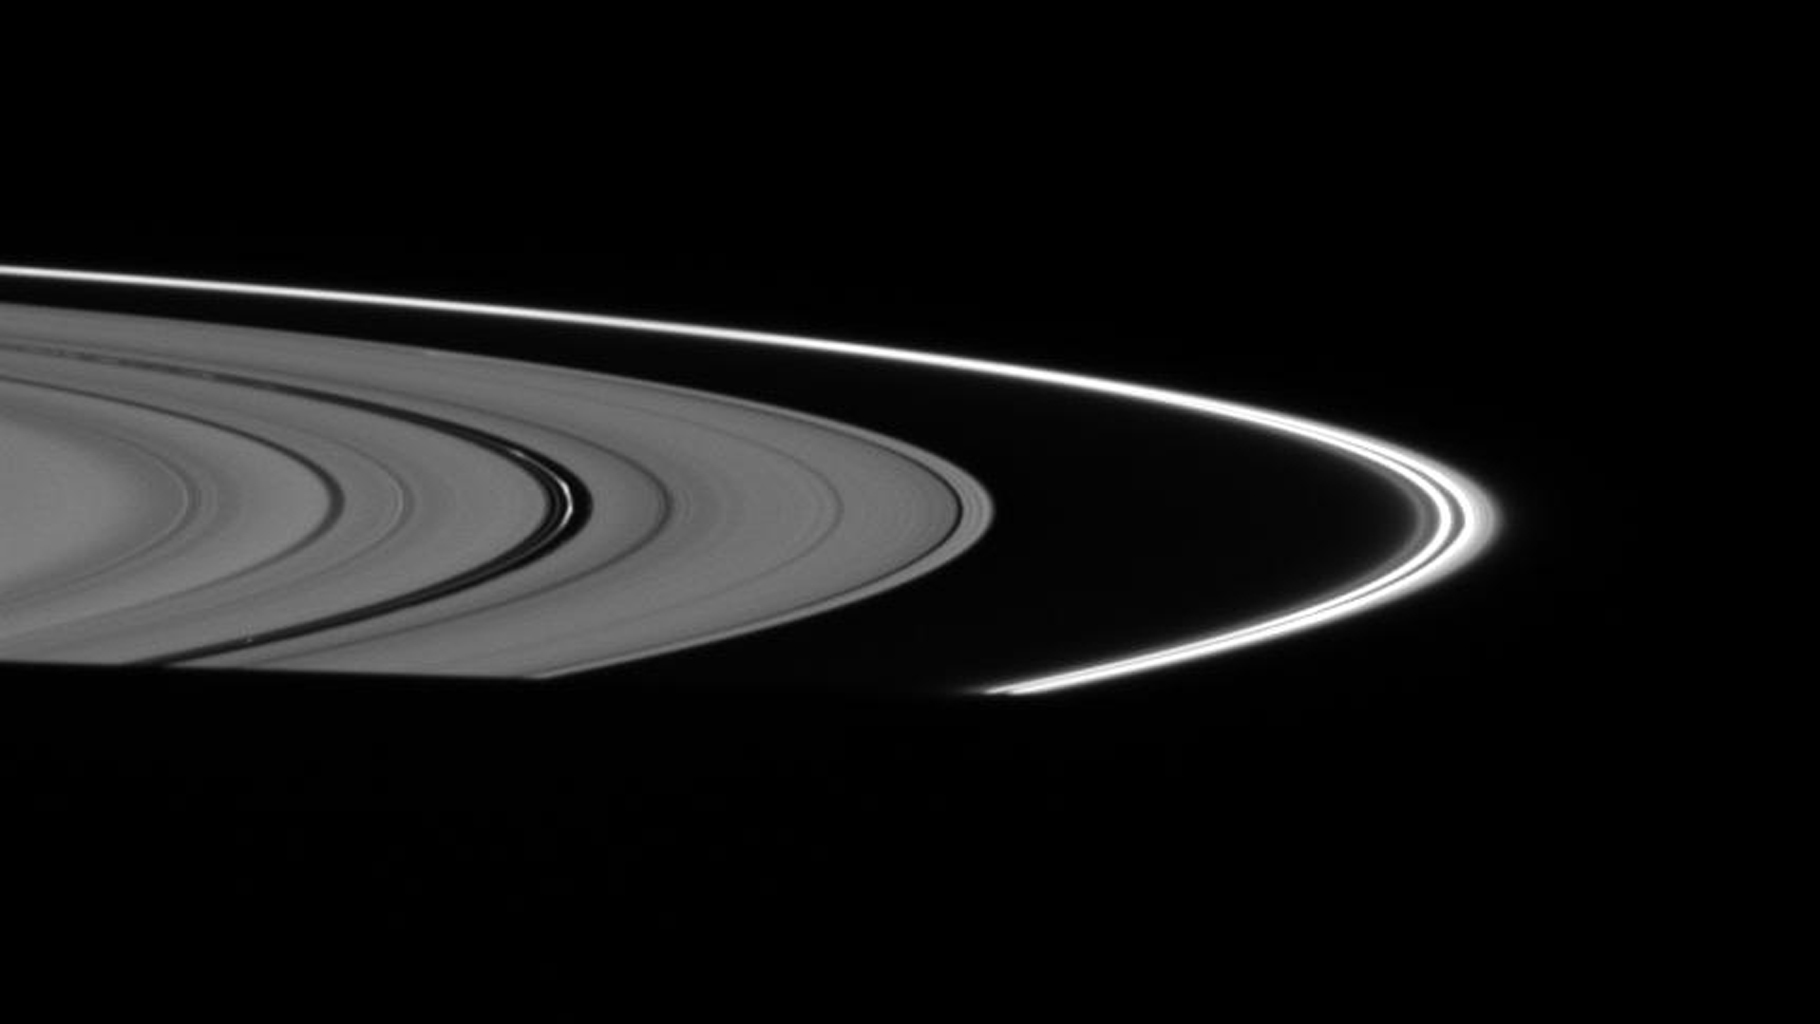 The fine, dust-sized particles of ice in the F ring and Encke Gap ringlets appear relatively bright, with the rings positioned almost directly between NASA's Cassini spacecraft and the Sun taken on Oct. 24, 2007.